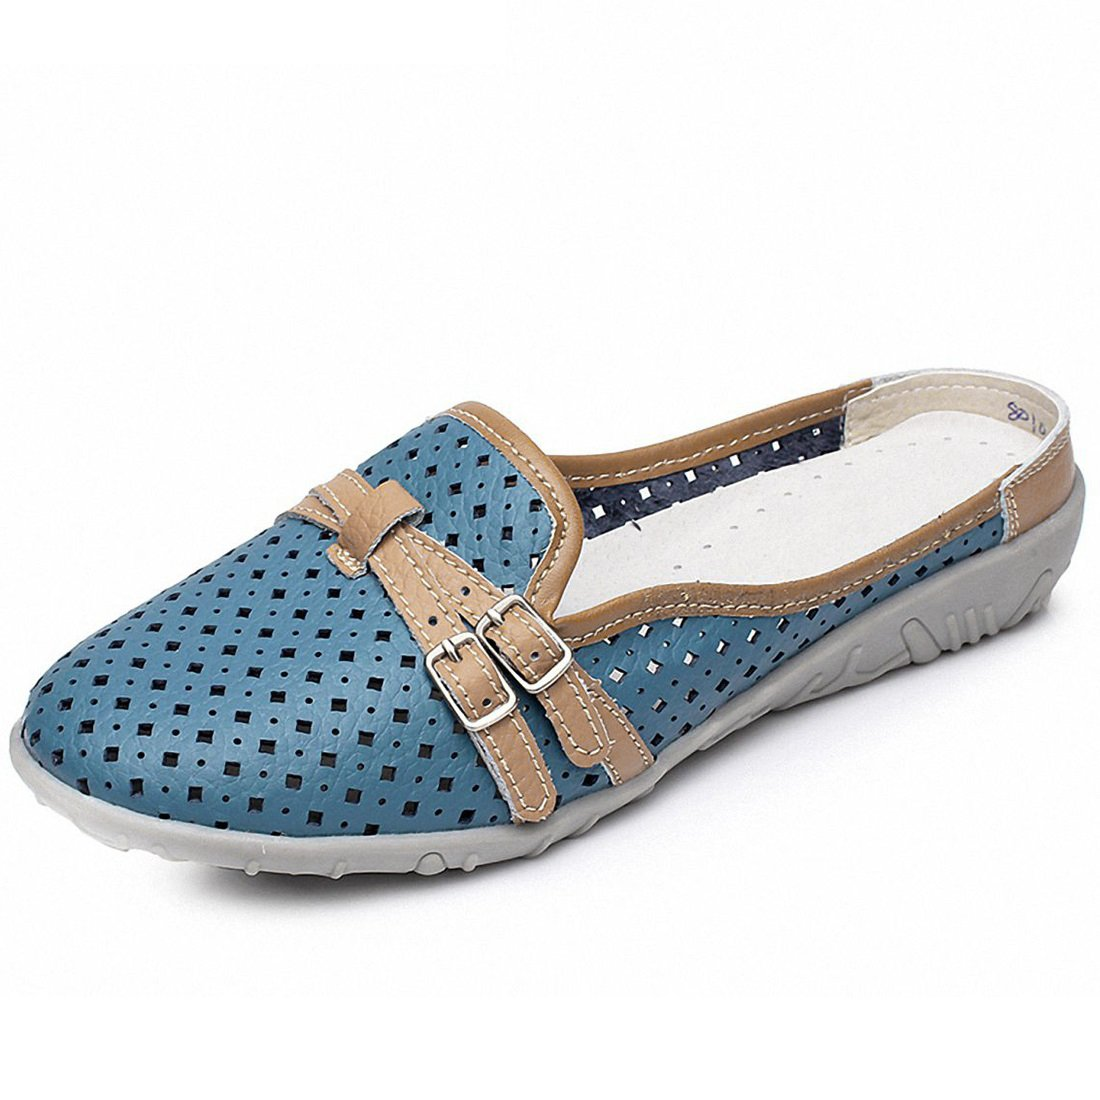 Women's Hollow Leather Backless Loafers Casual Slip On Mules Moccasins